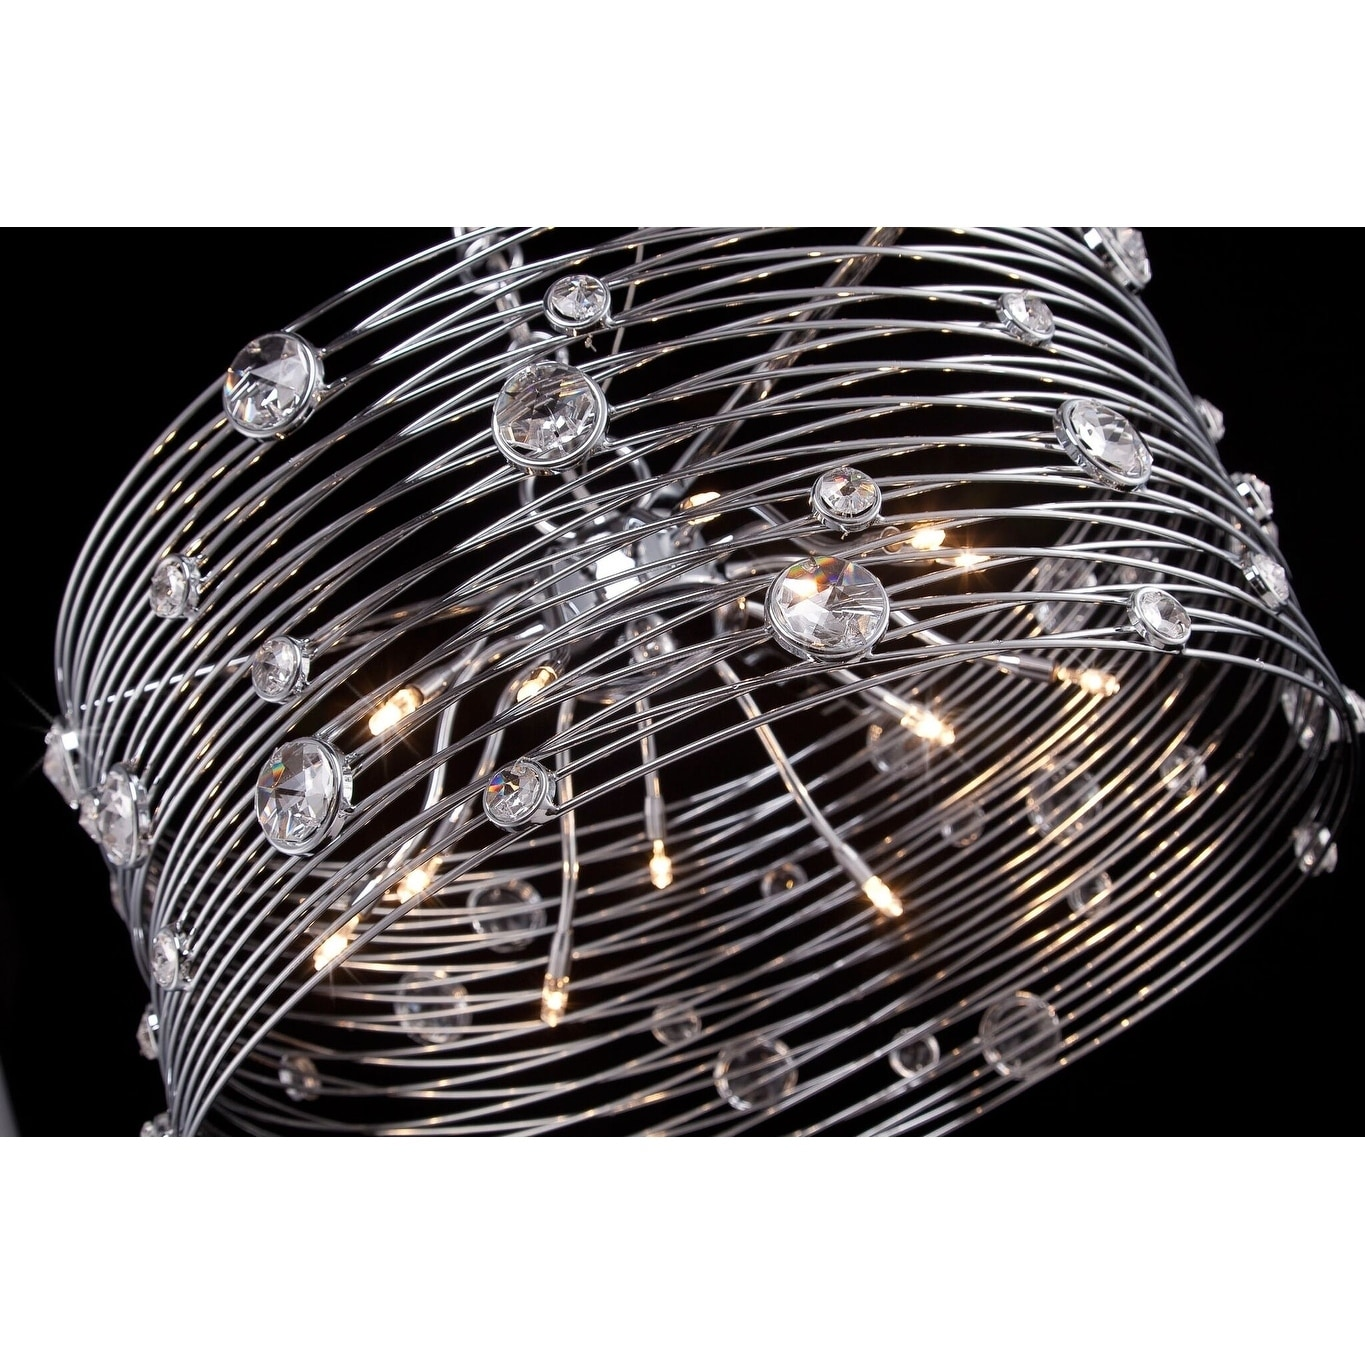 Eurofase Corfo 6 Light Chandelier Chrome Finish 26341 019 11 High X 12 5 In Diameter 11 High X 12 5 In Diameter Overstock 17910605